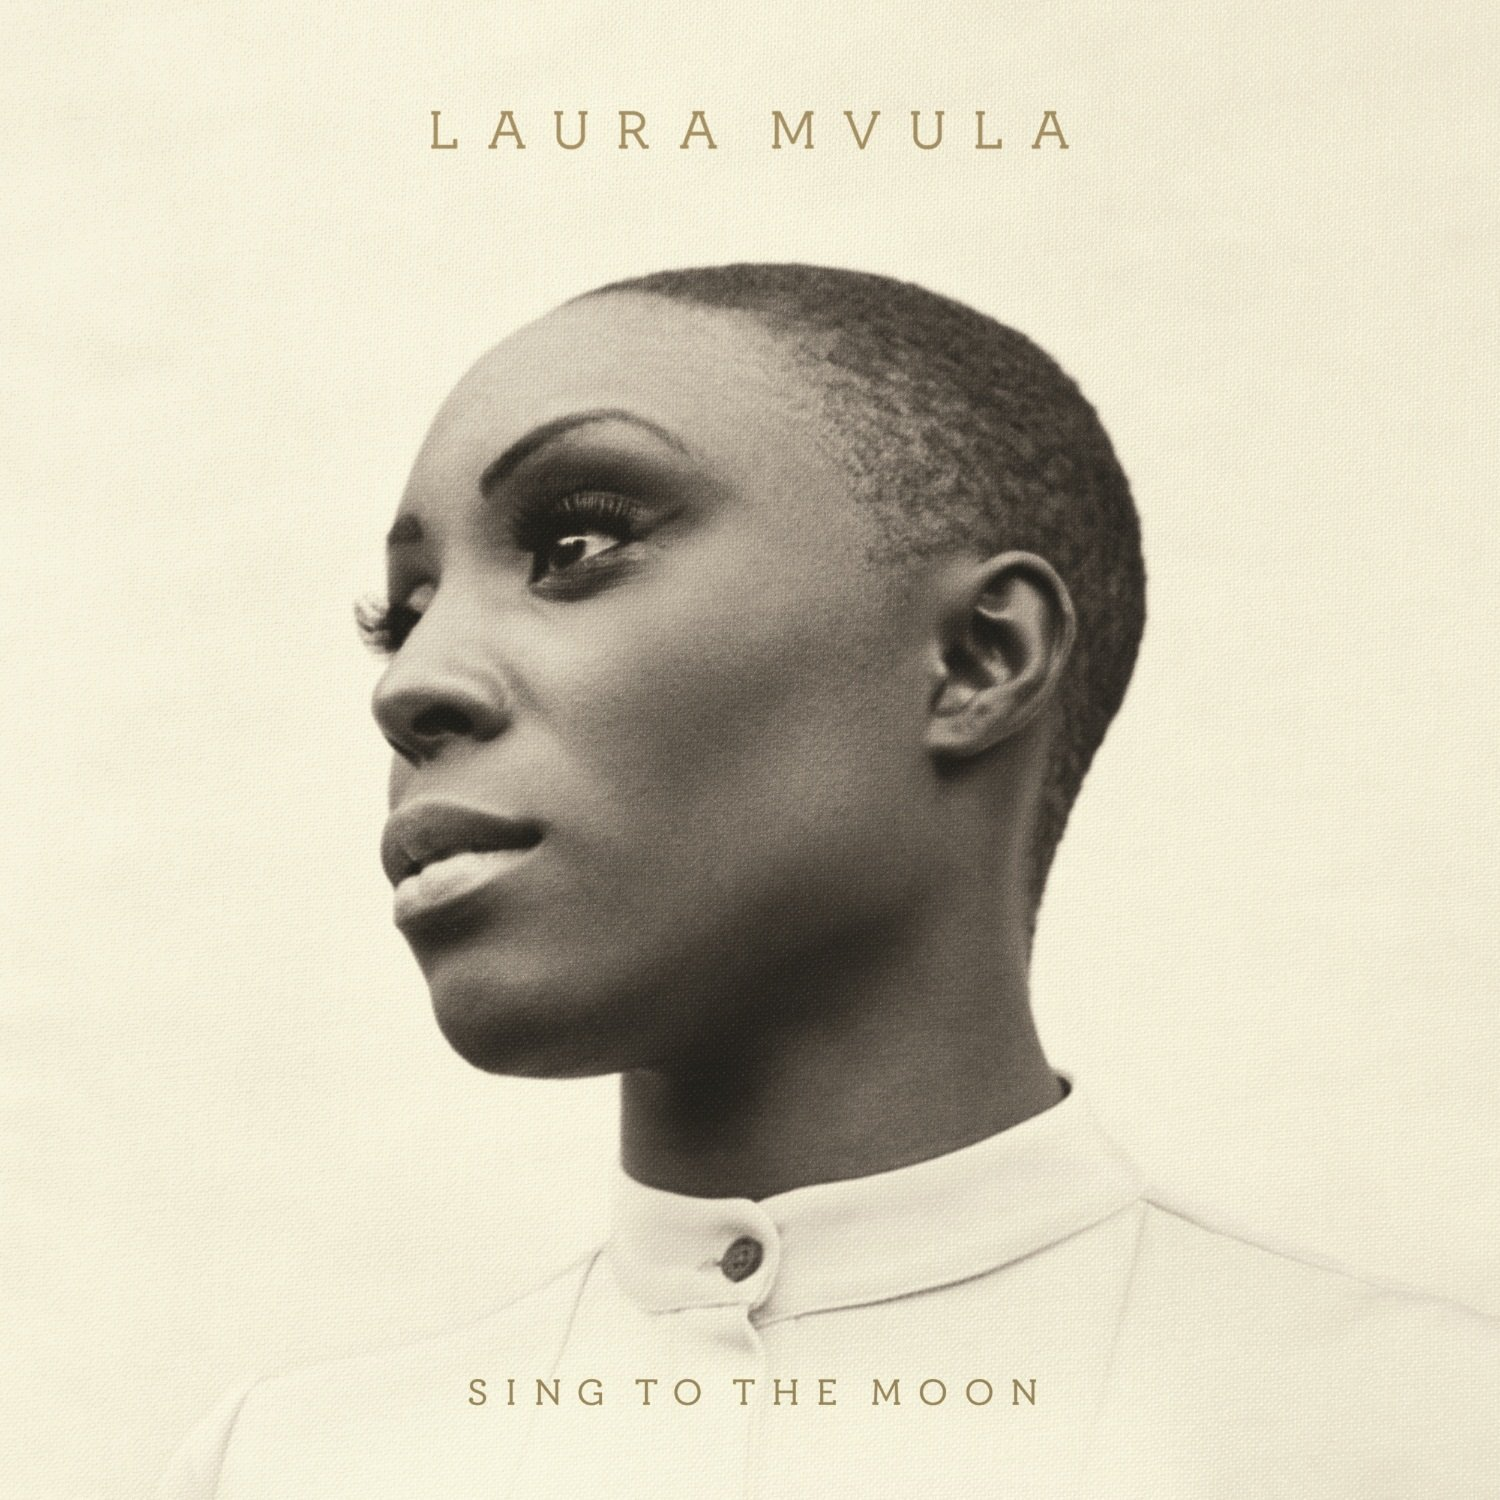 Laura Mvula – Sing to the Moon